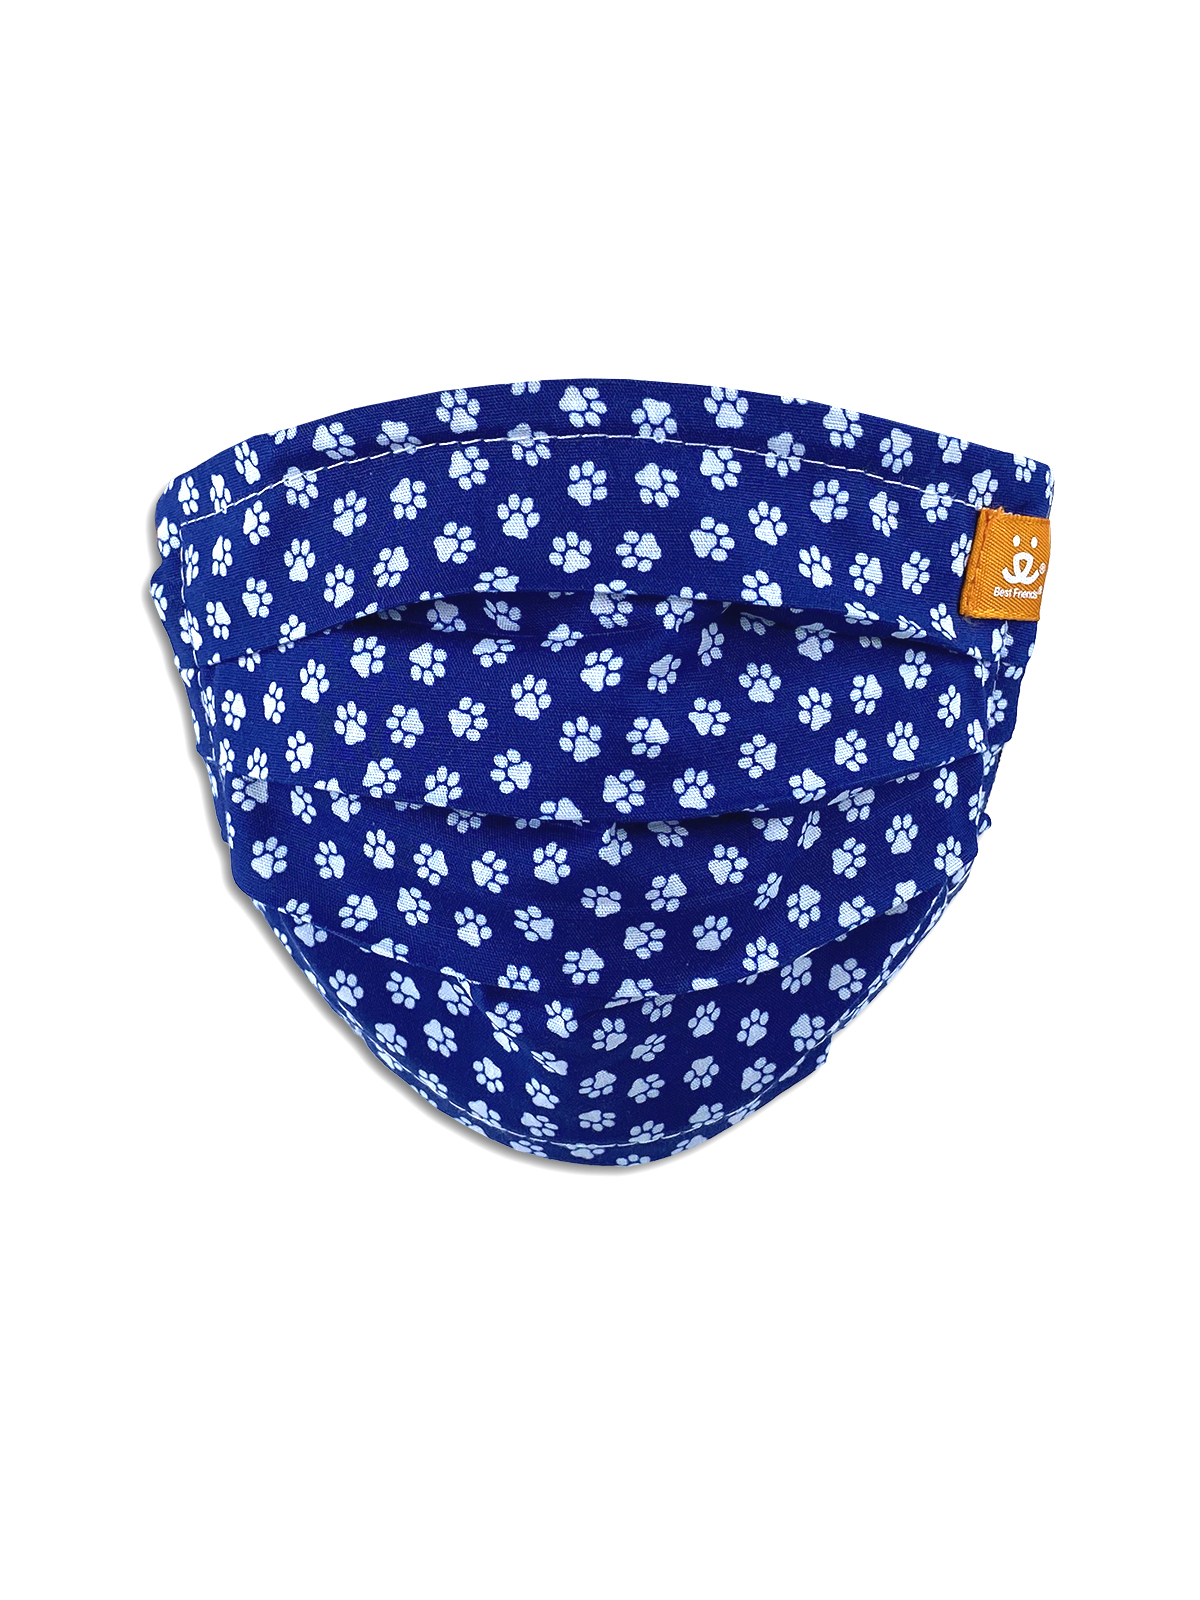 KIDS DAISY PLEATED REVERSIBLE MASK 3-PACK